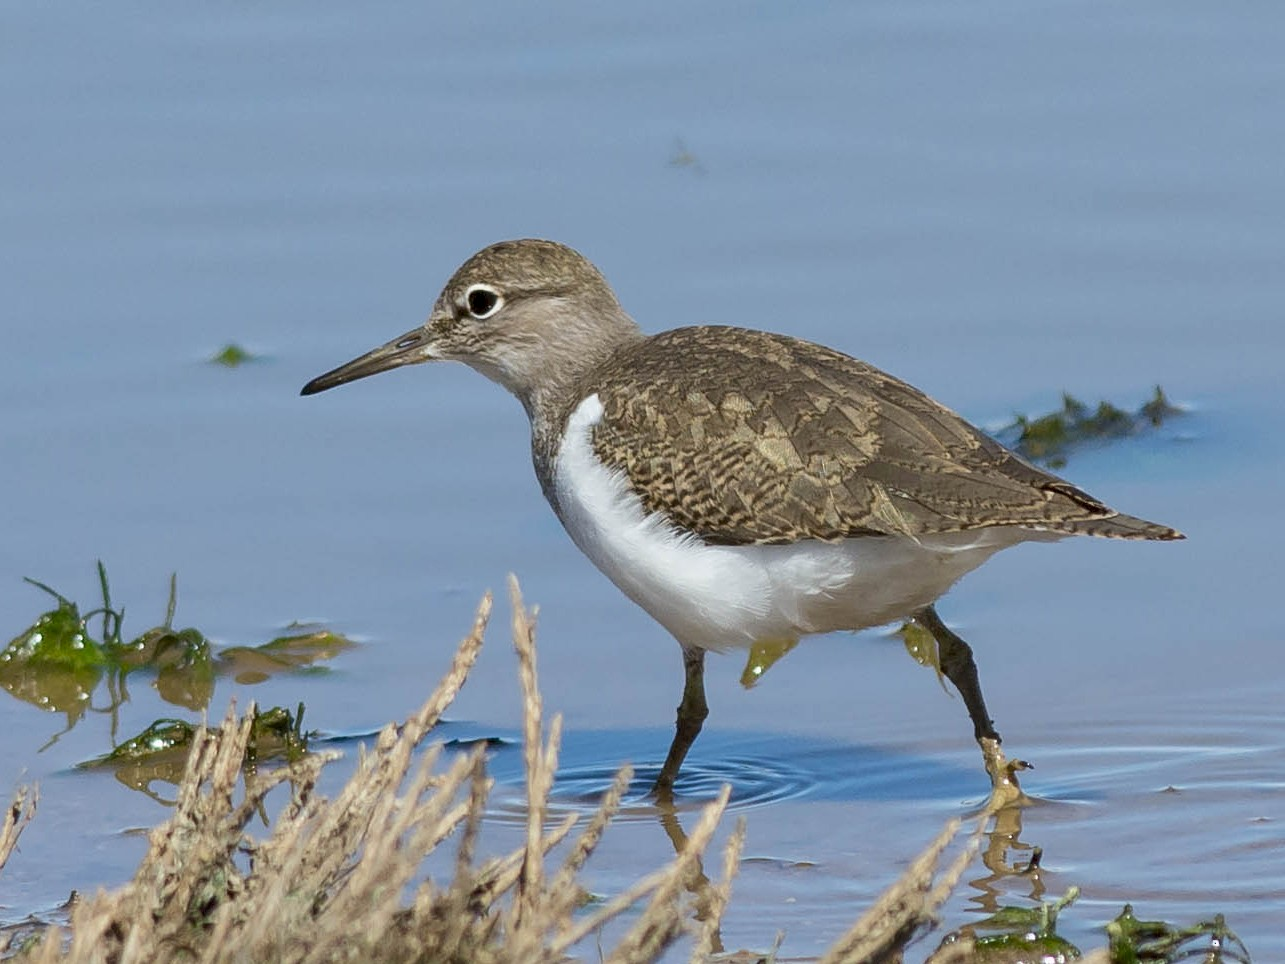 Common Sandpiper - Batmunkh Davaasuren